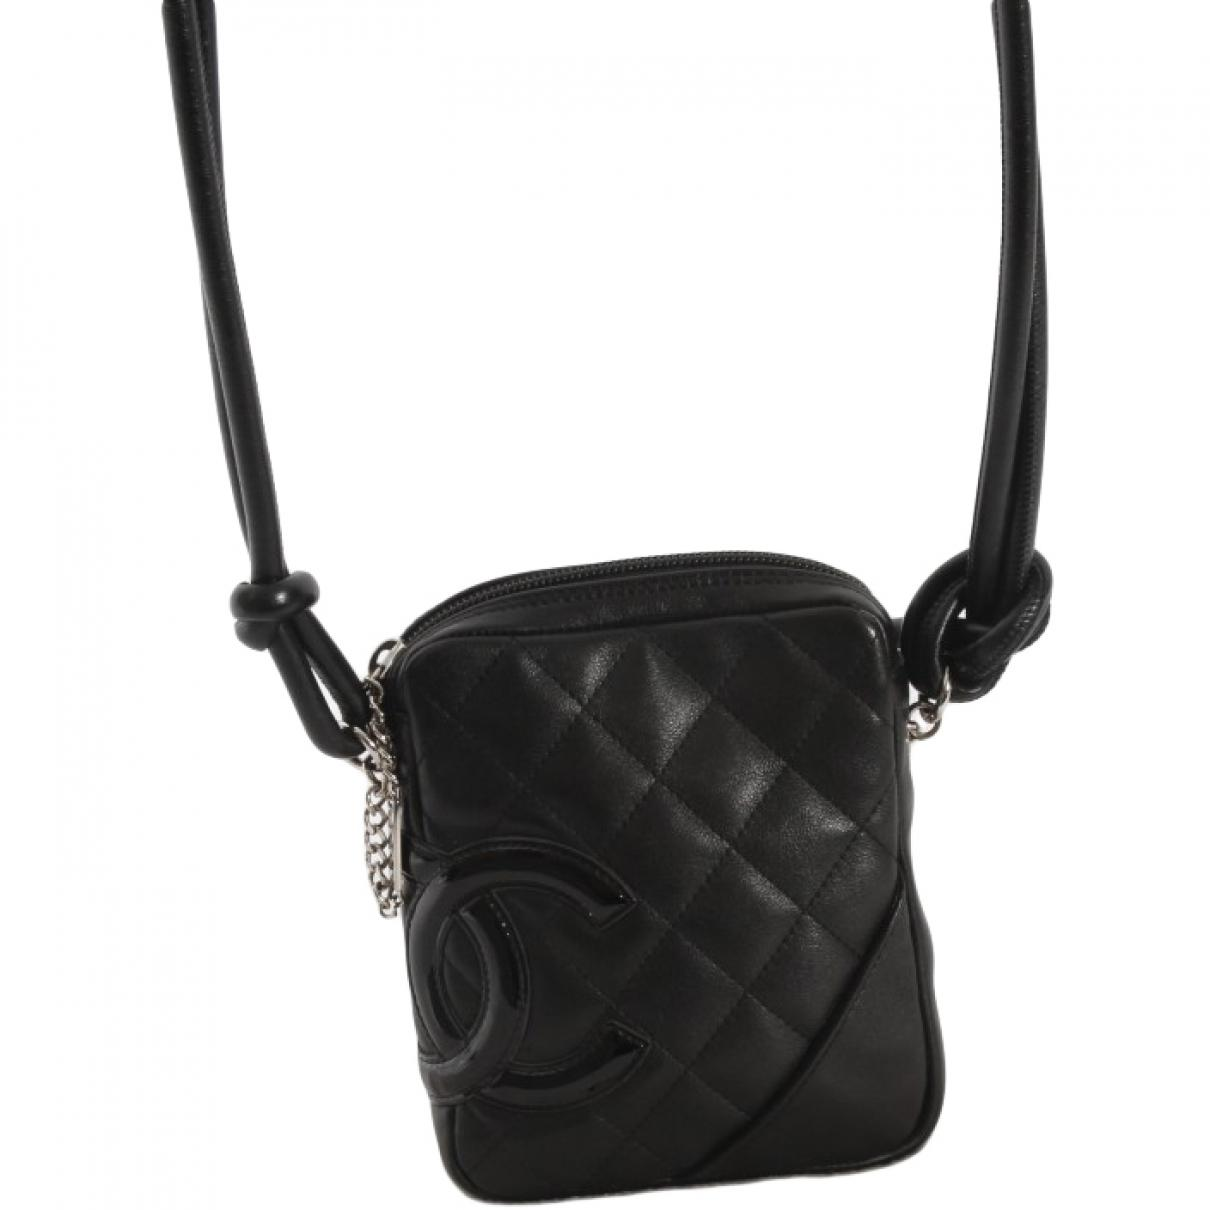 789c8ecdd9eb Chanel Pre-owned Cambon Crossbody Bag in Black - Lyst